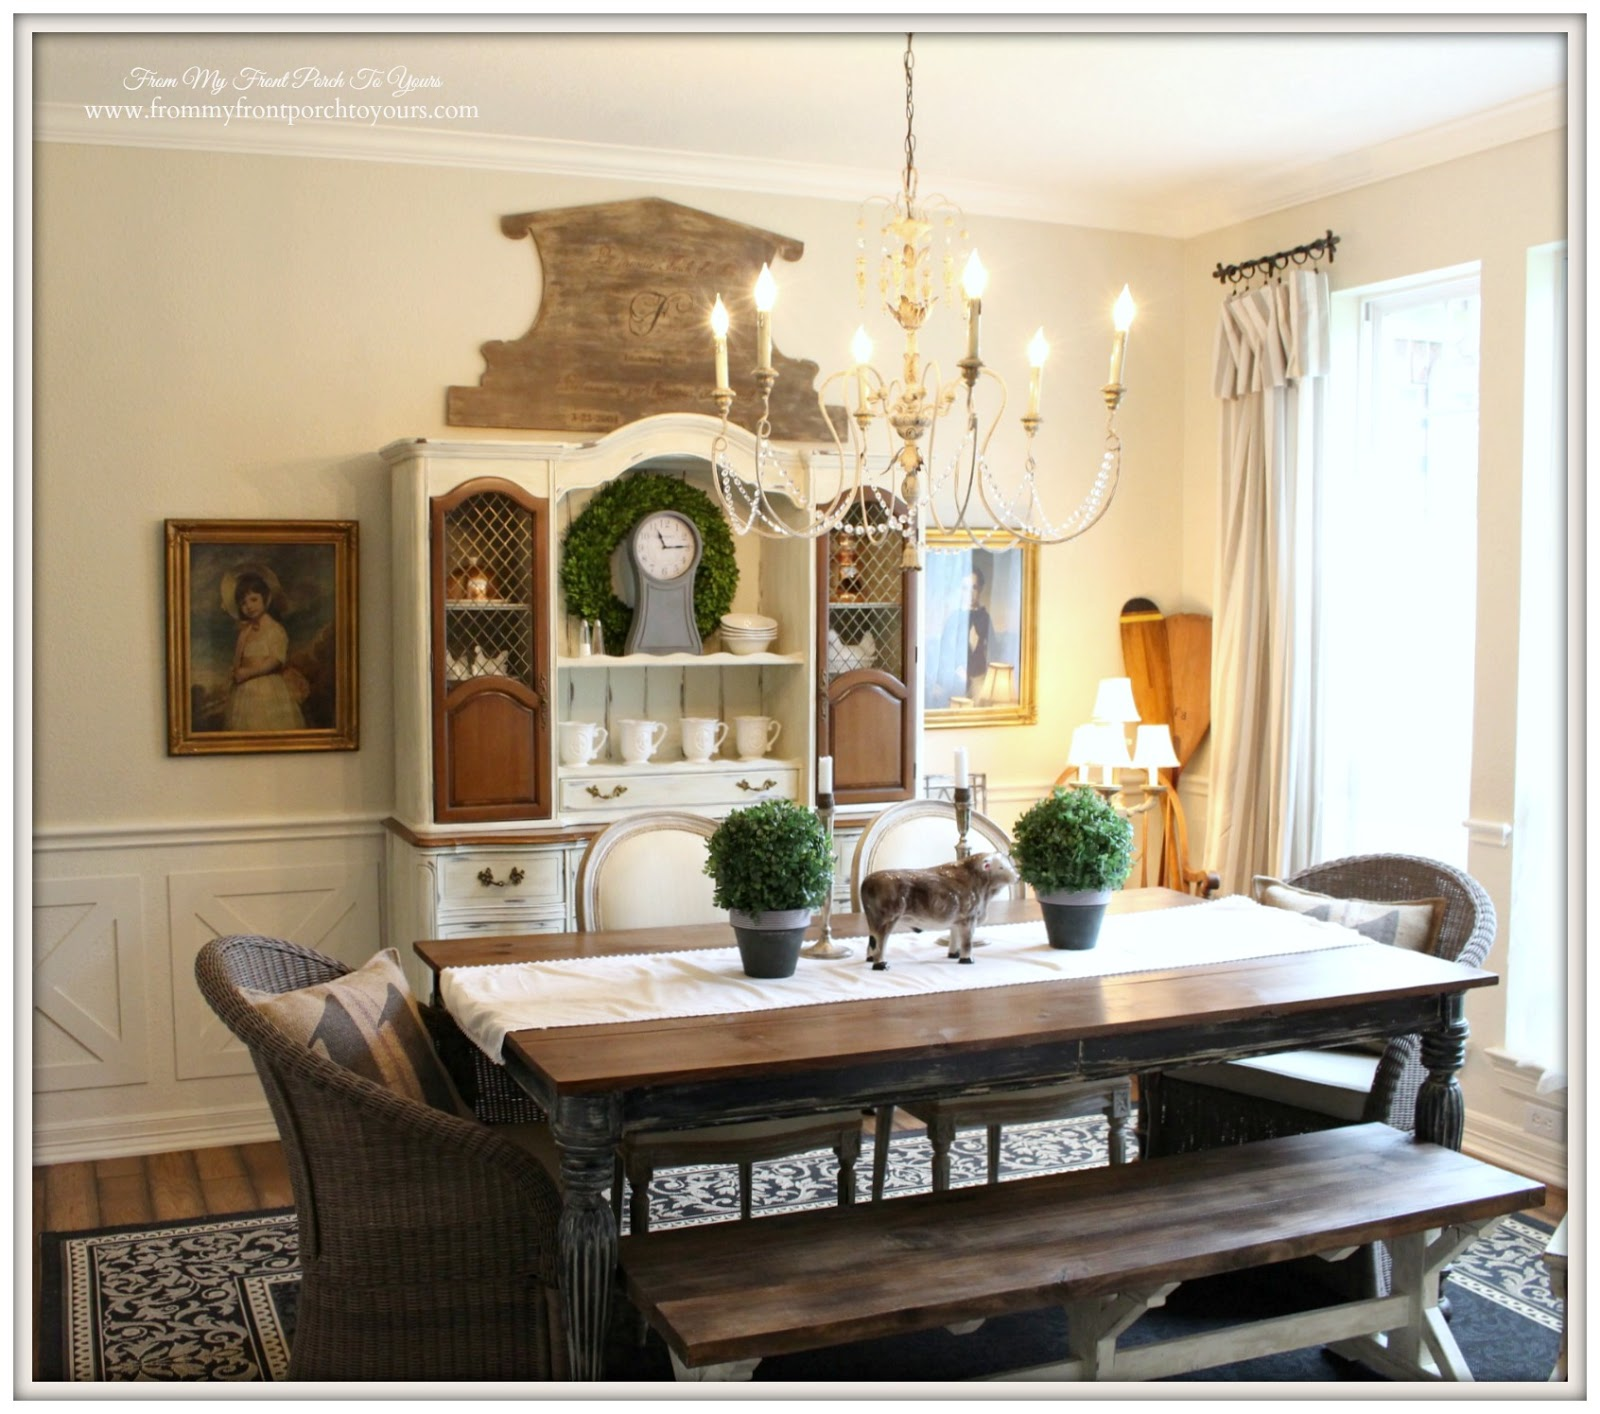 French Dining Room: From My Front Porch To Yours: French Country Farmhouse